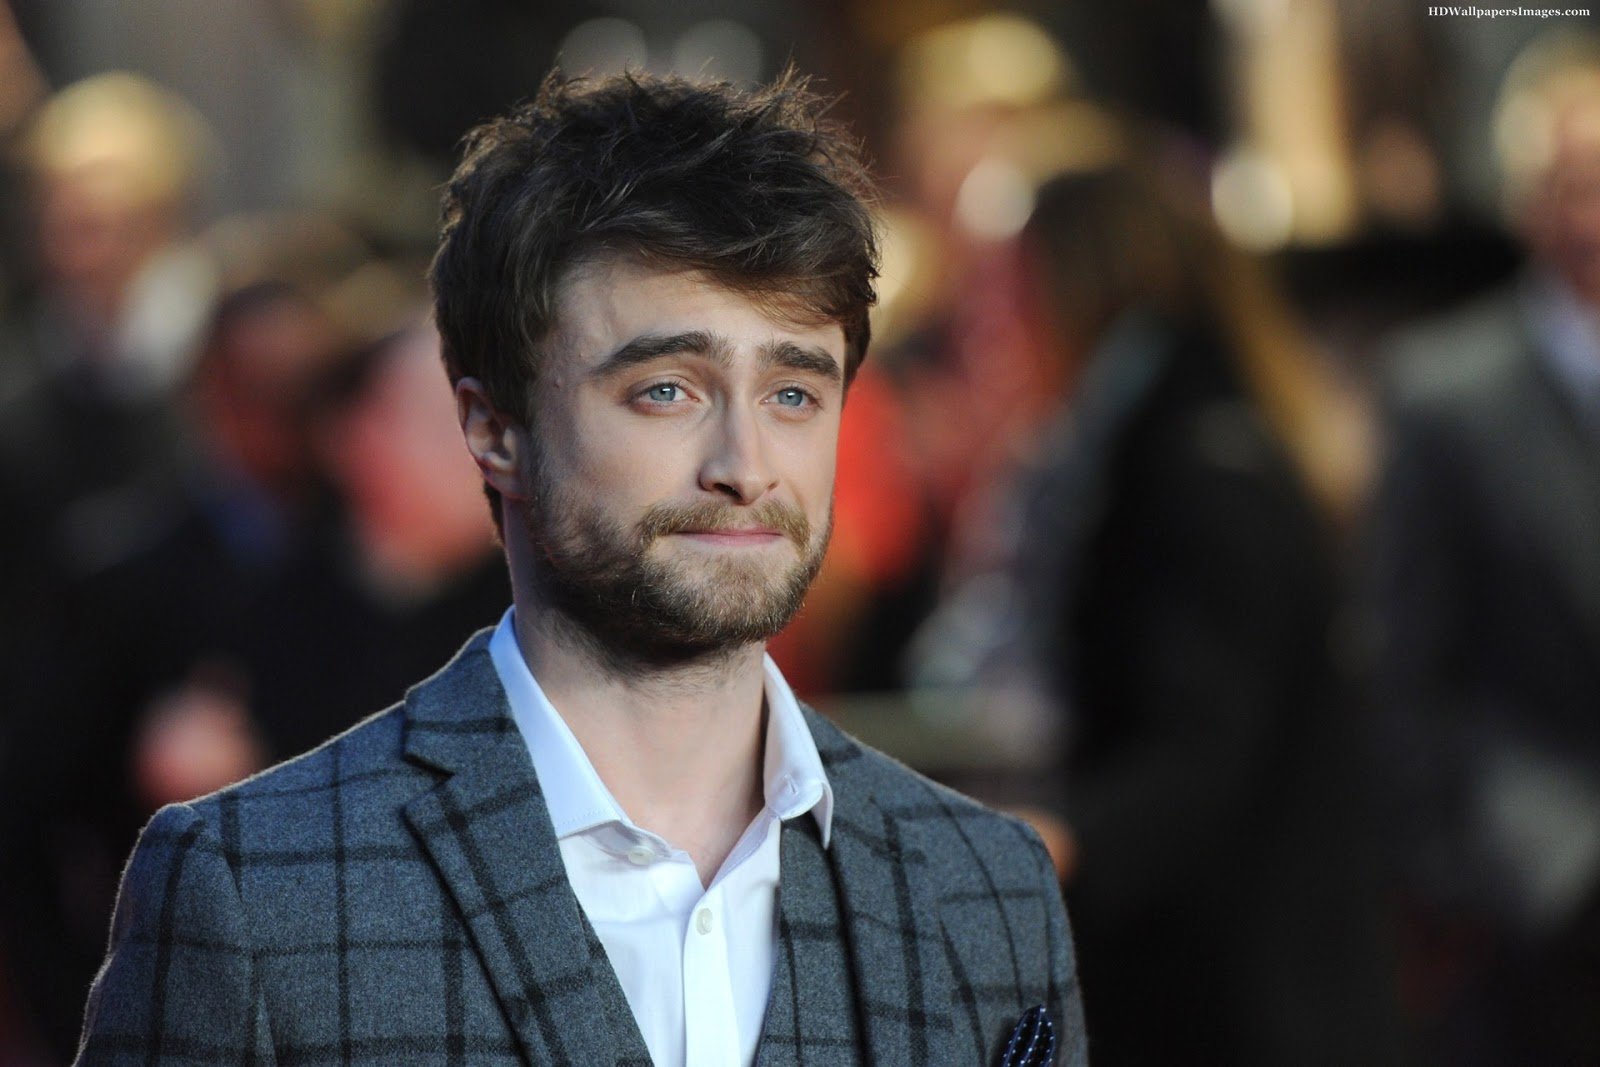 celebrities daniel radcliffe david copperfield young david copperfield harry potter all 7 harry potter my boy jack jack kipling kill your darlings allen ginsberg